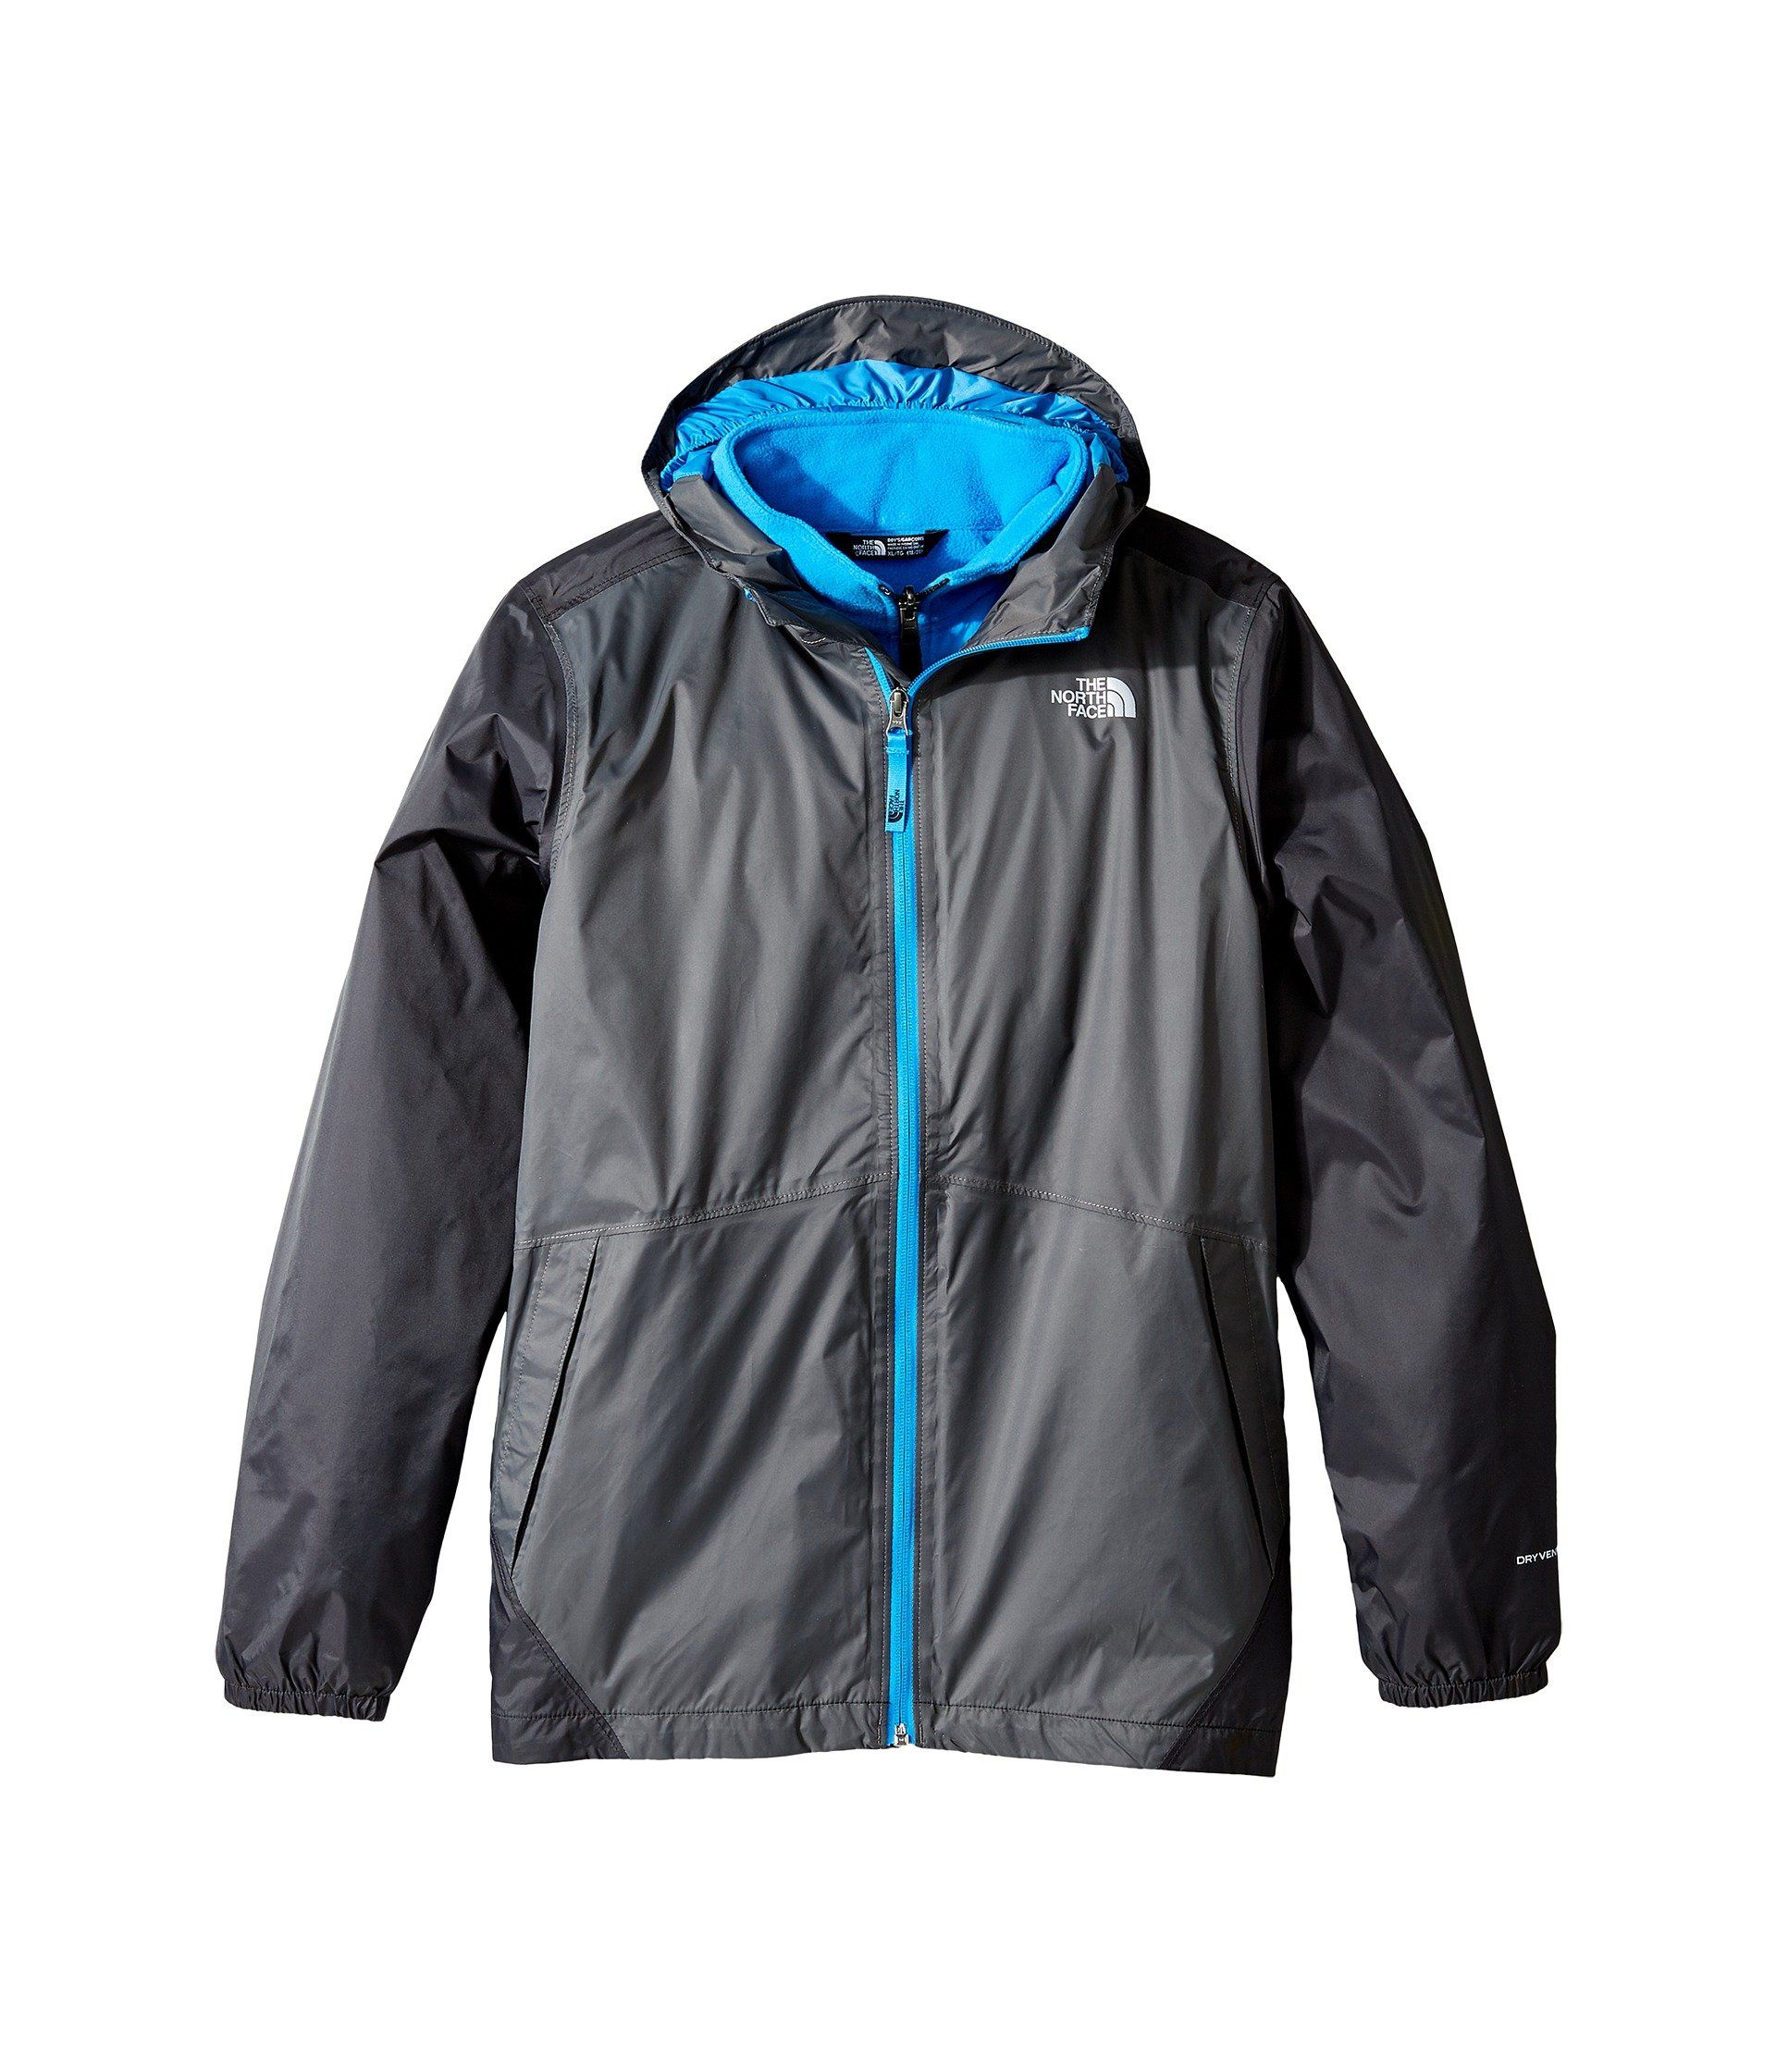 a28f017f0 The North Face Big Boys' Stormy Rain Triclimate Jacket - graphite ...